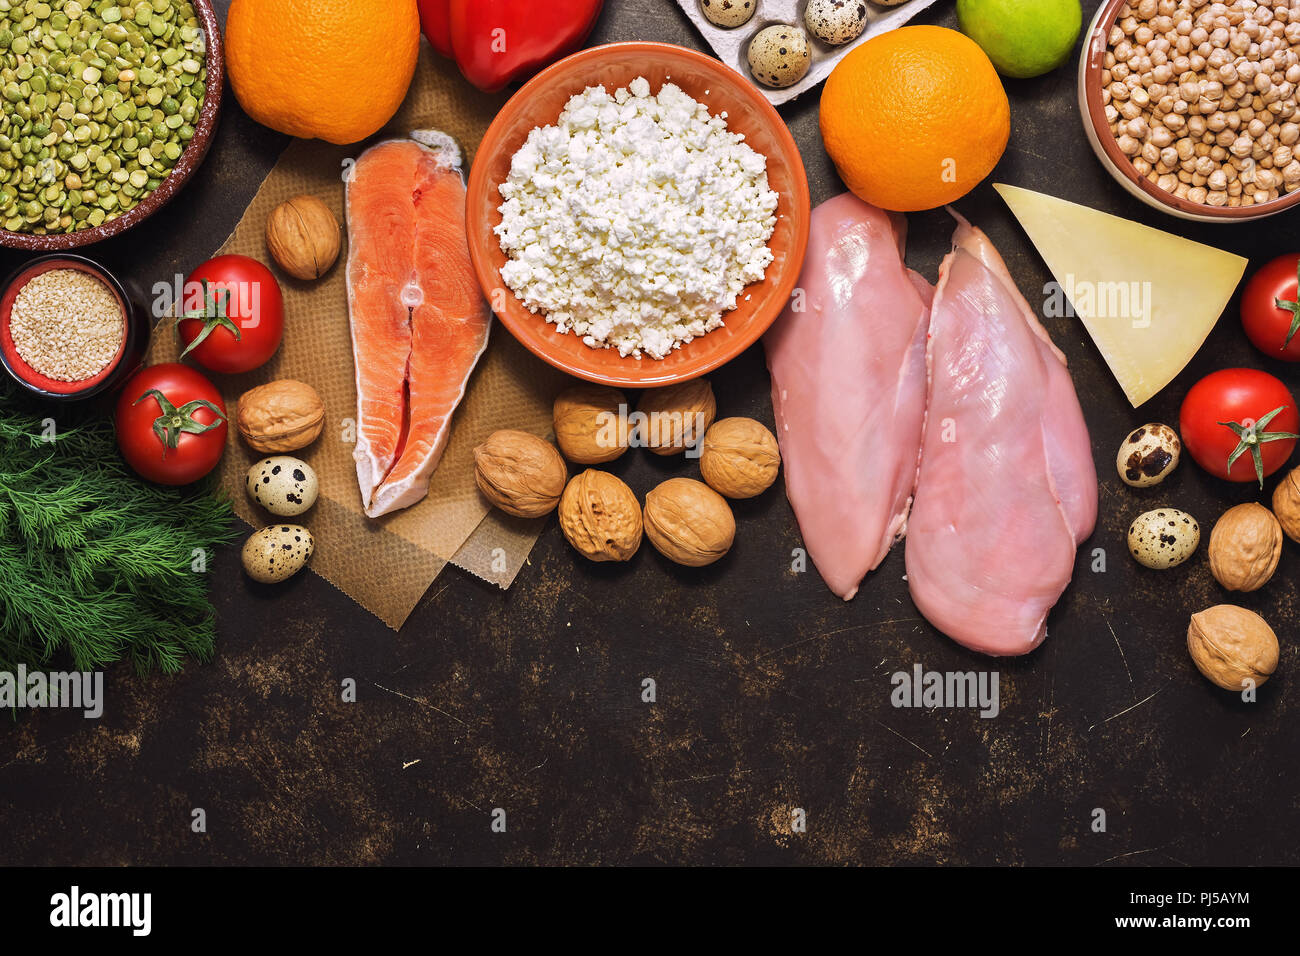 Background with healthy food. Red fish, chicken fillet, vegetables, fruits, cereals, dairy products, quail eggs. Top view, copy space. Stock Photo